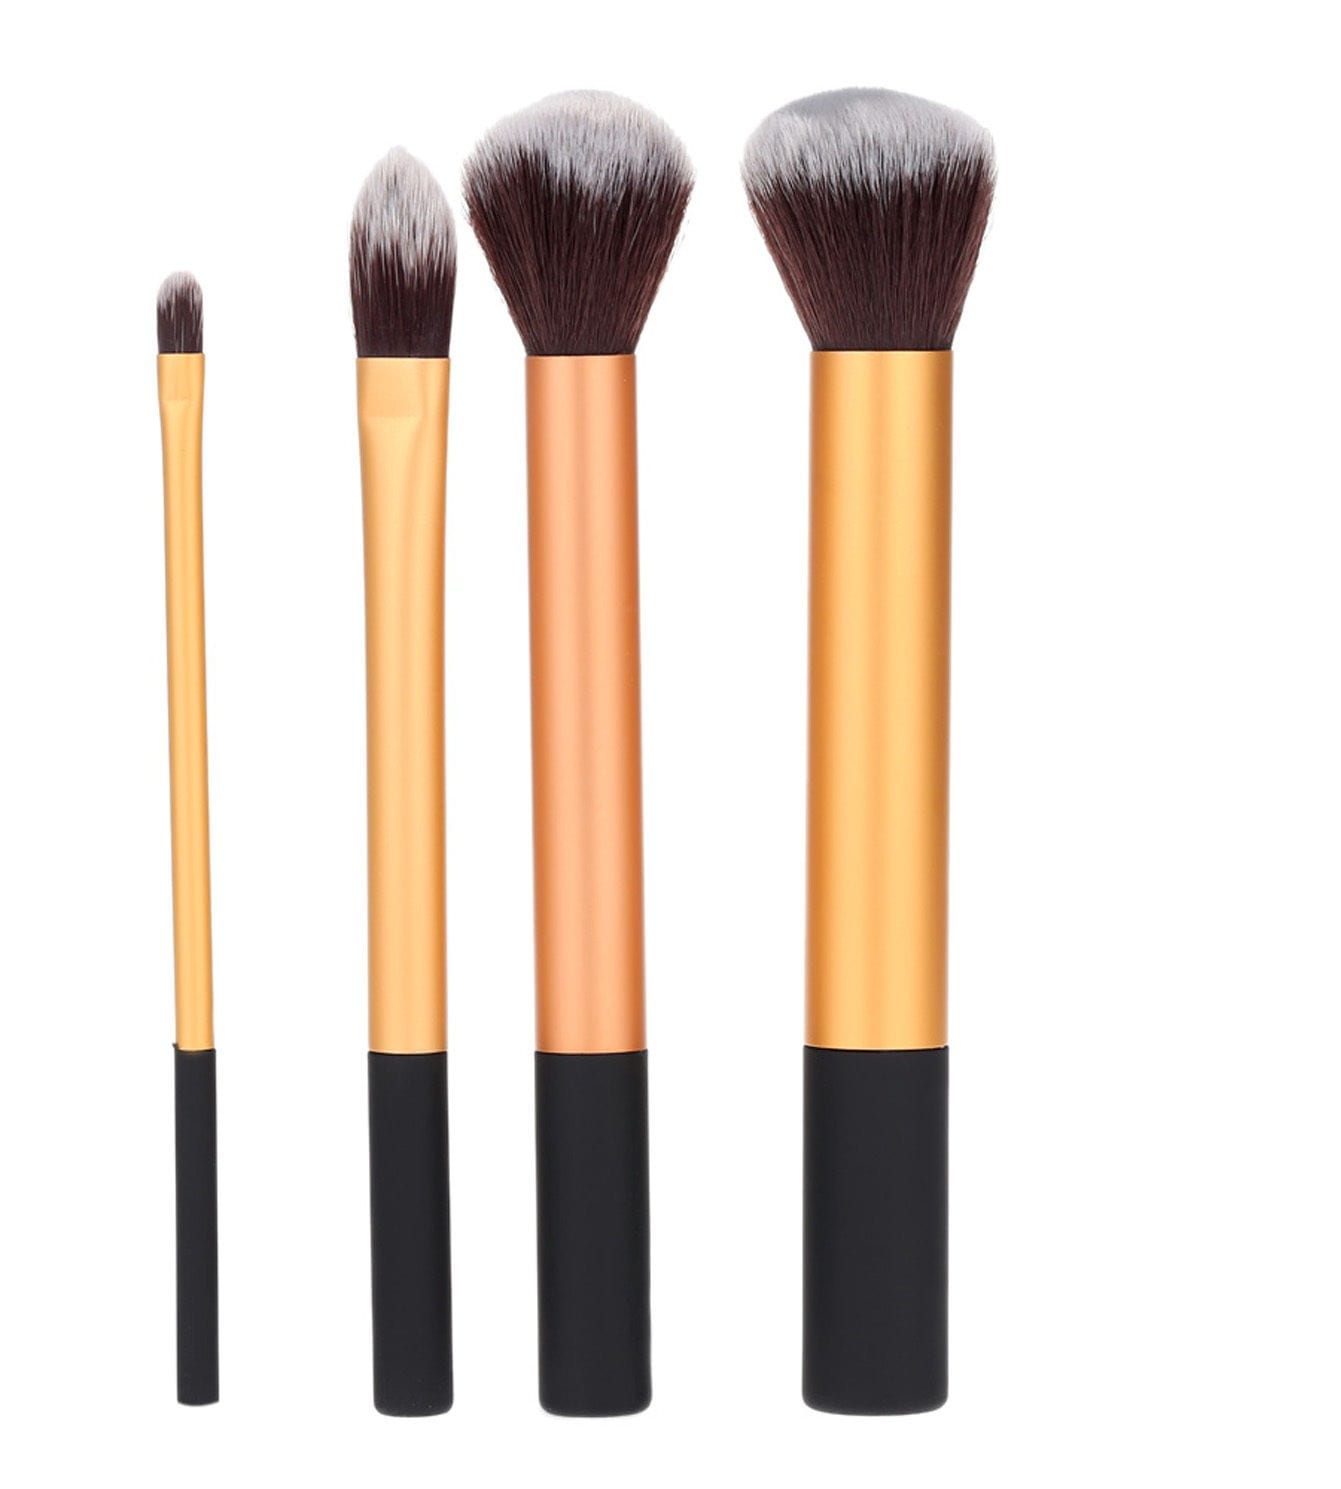 483fd4bd474ee Glowii 4pcs Essential Gold Makeup Brush Set - Colour Zone Cosmetics